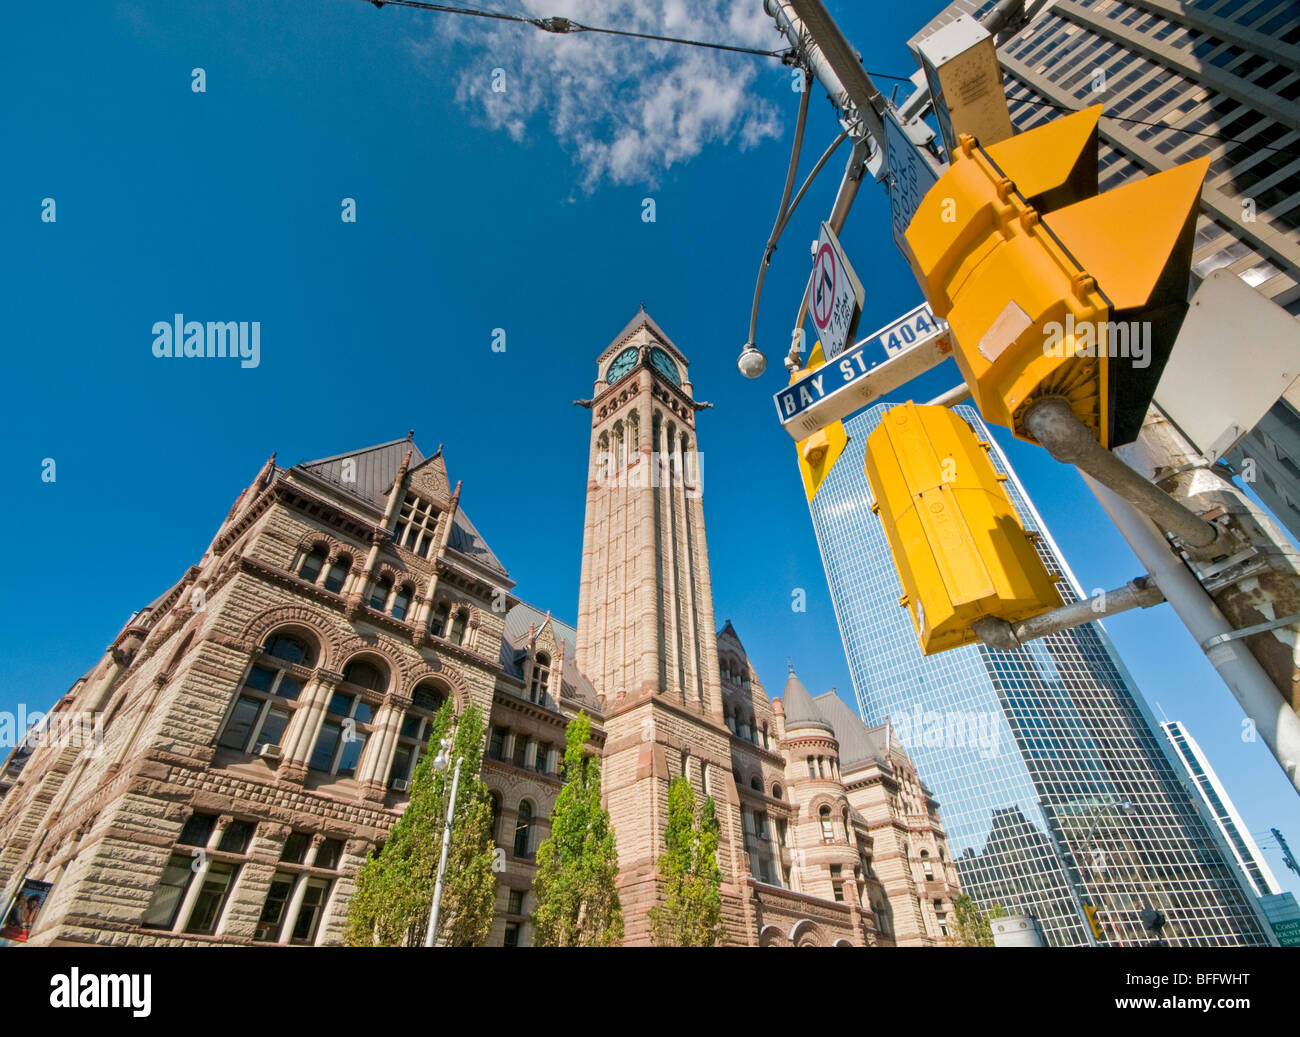 Old City Hall, Corner of Queen Street West & Bay Street, Toronto, Canada, Ontario, North America - Stock Image